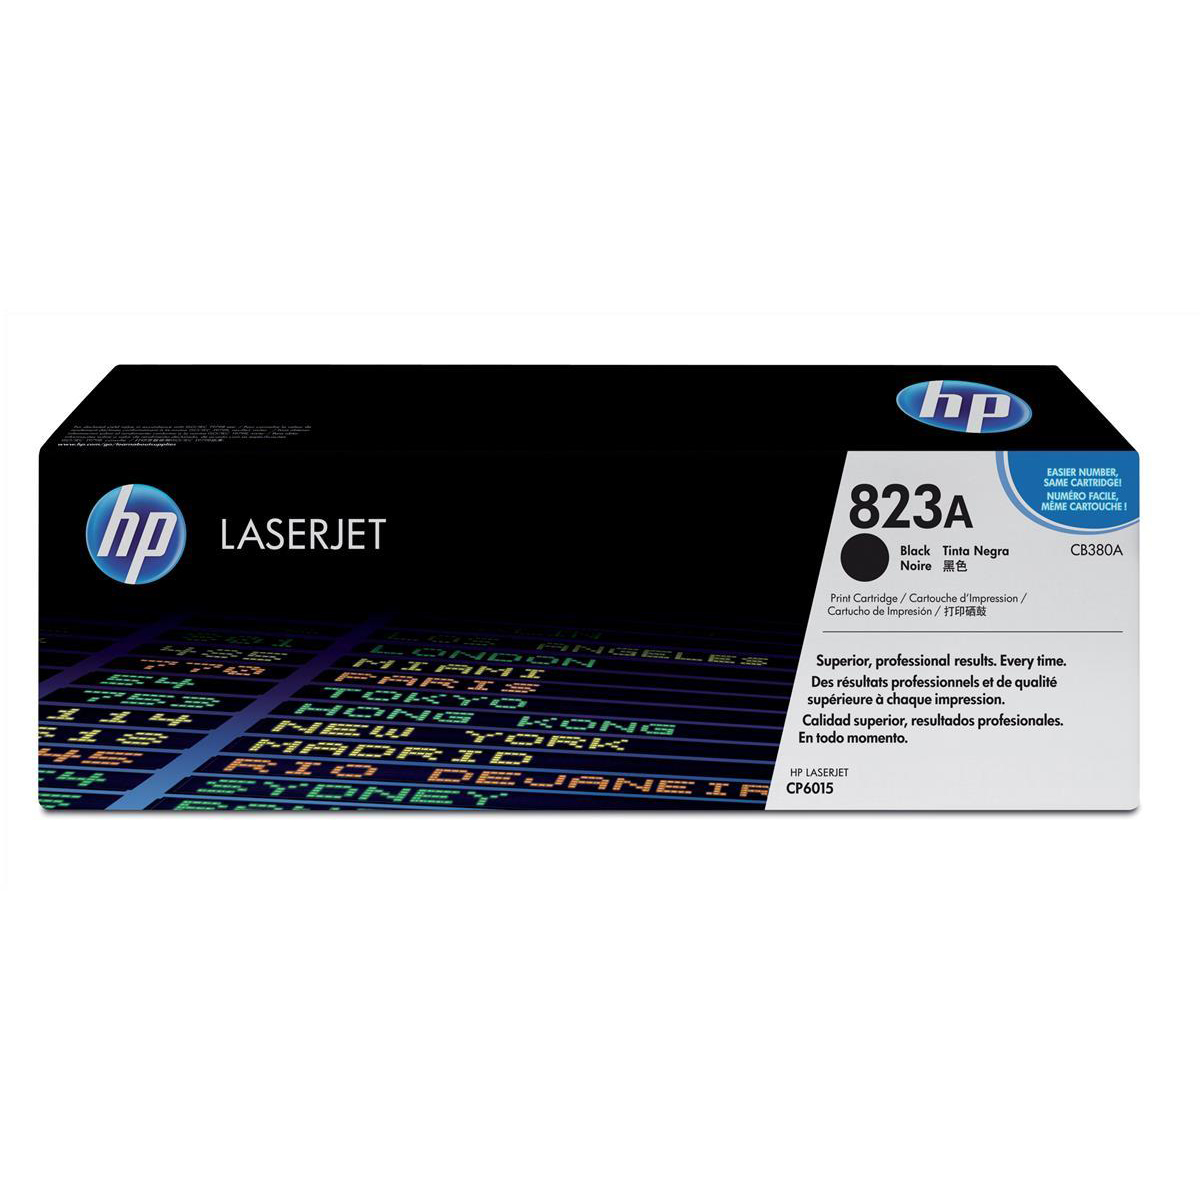 HP 823A Laser Toner Cartridge Page Life 16500pp Black Ref CB380A